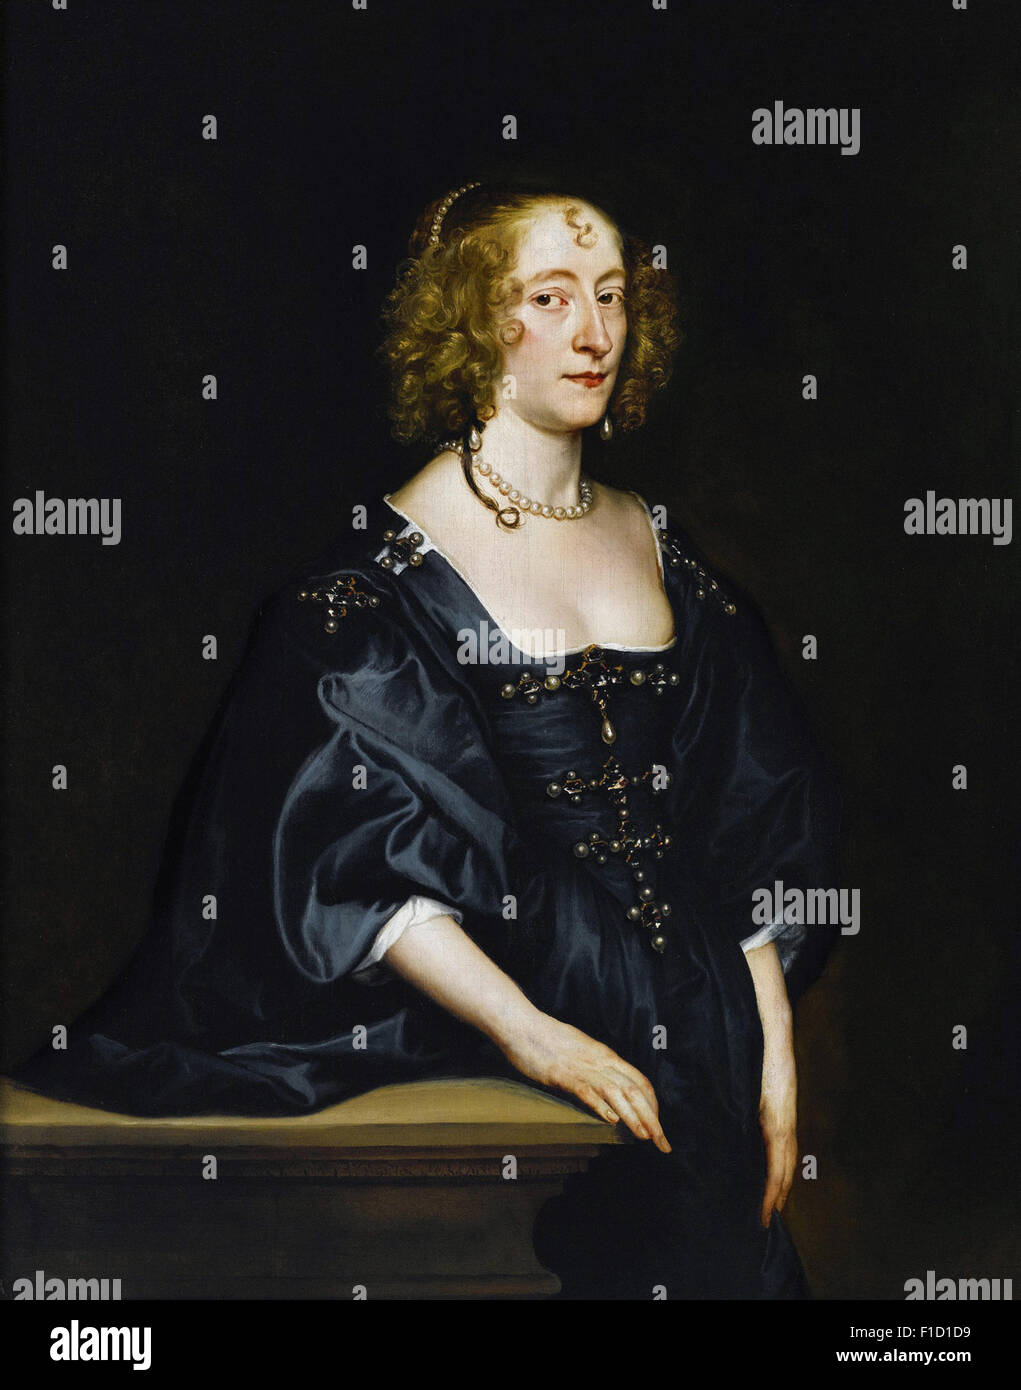 Anthony Van Dyck - Portrait of Frances Devereux, countess of Hertford, and later duchess of Somerset (1599 1674) - Stock Image